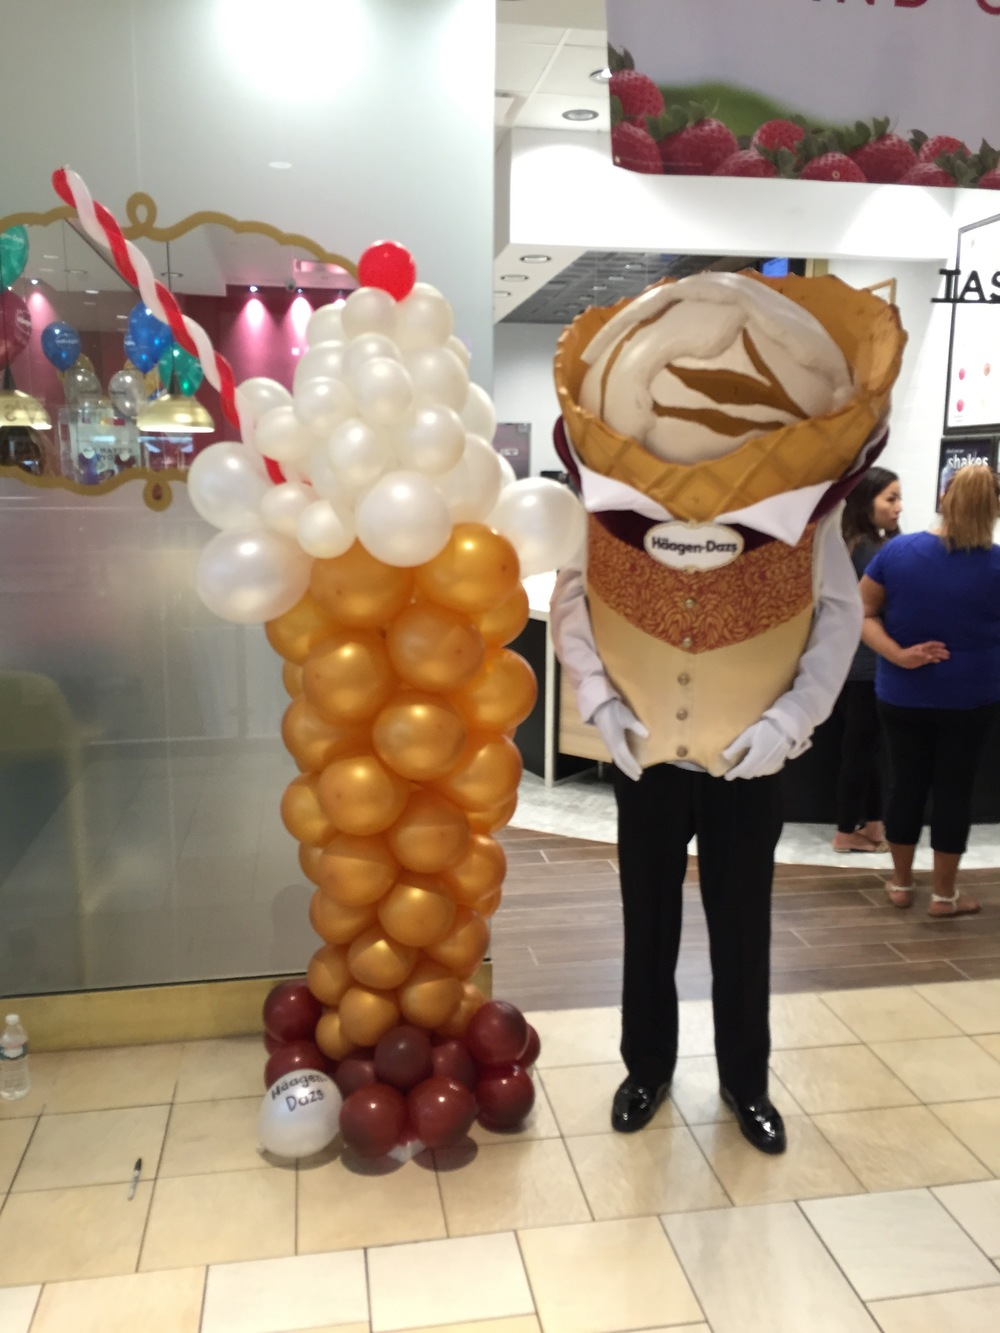 Gallery - Balloon Display Haggen Daz.jpg